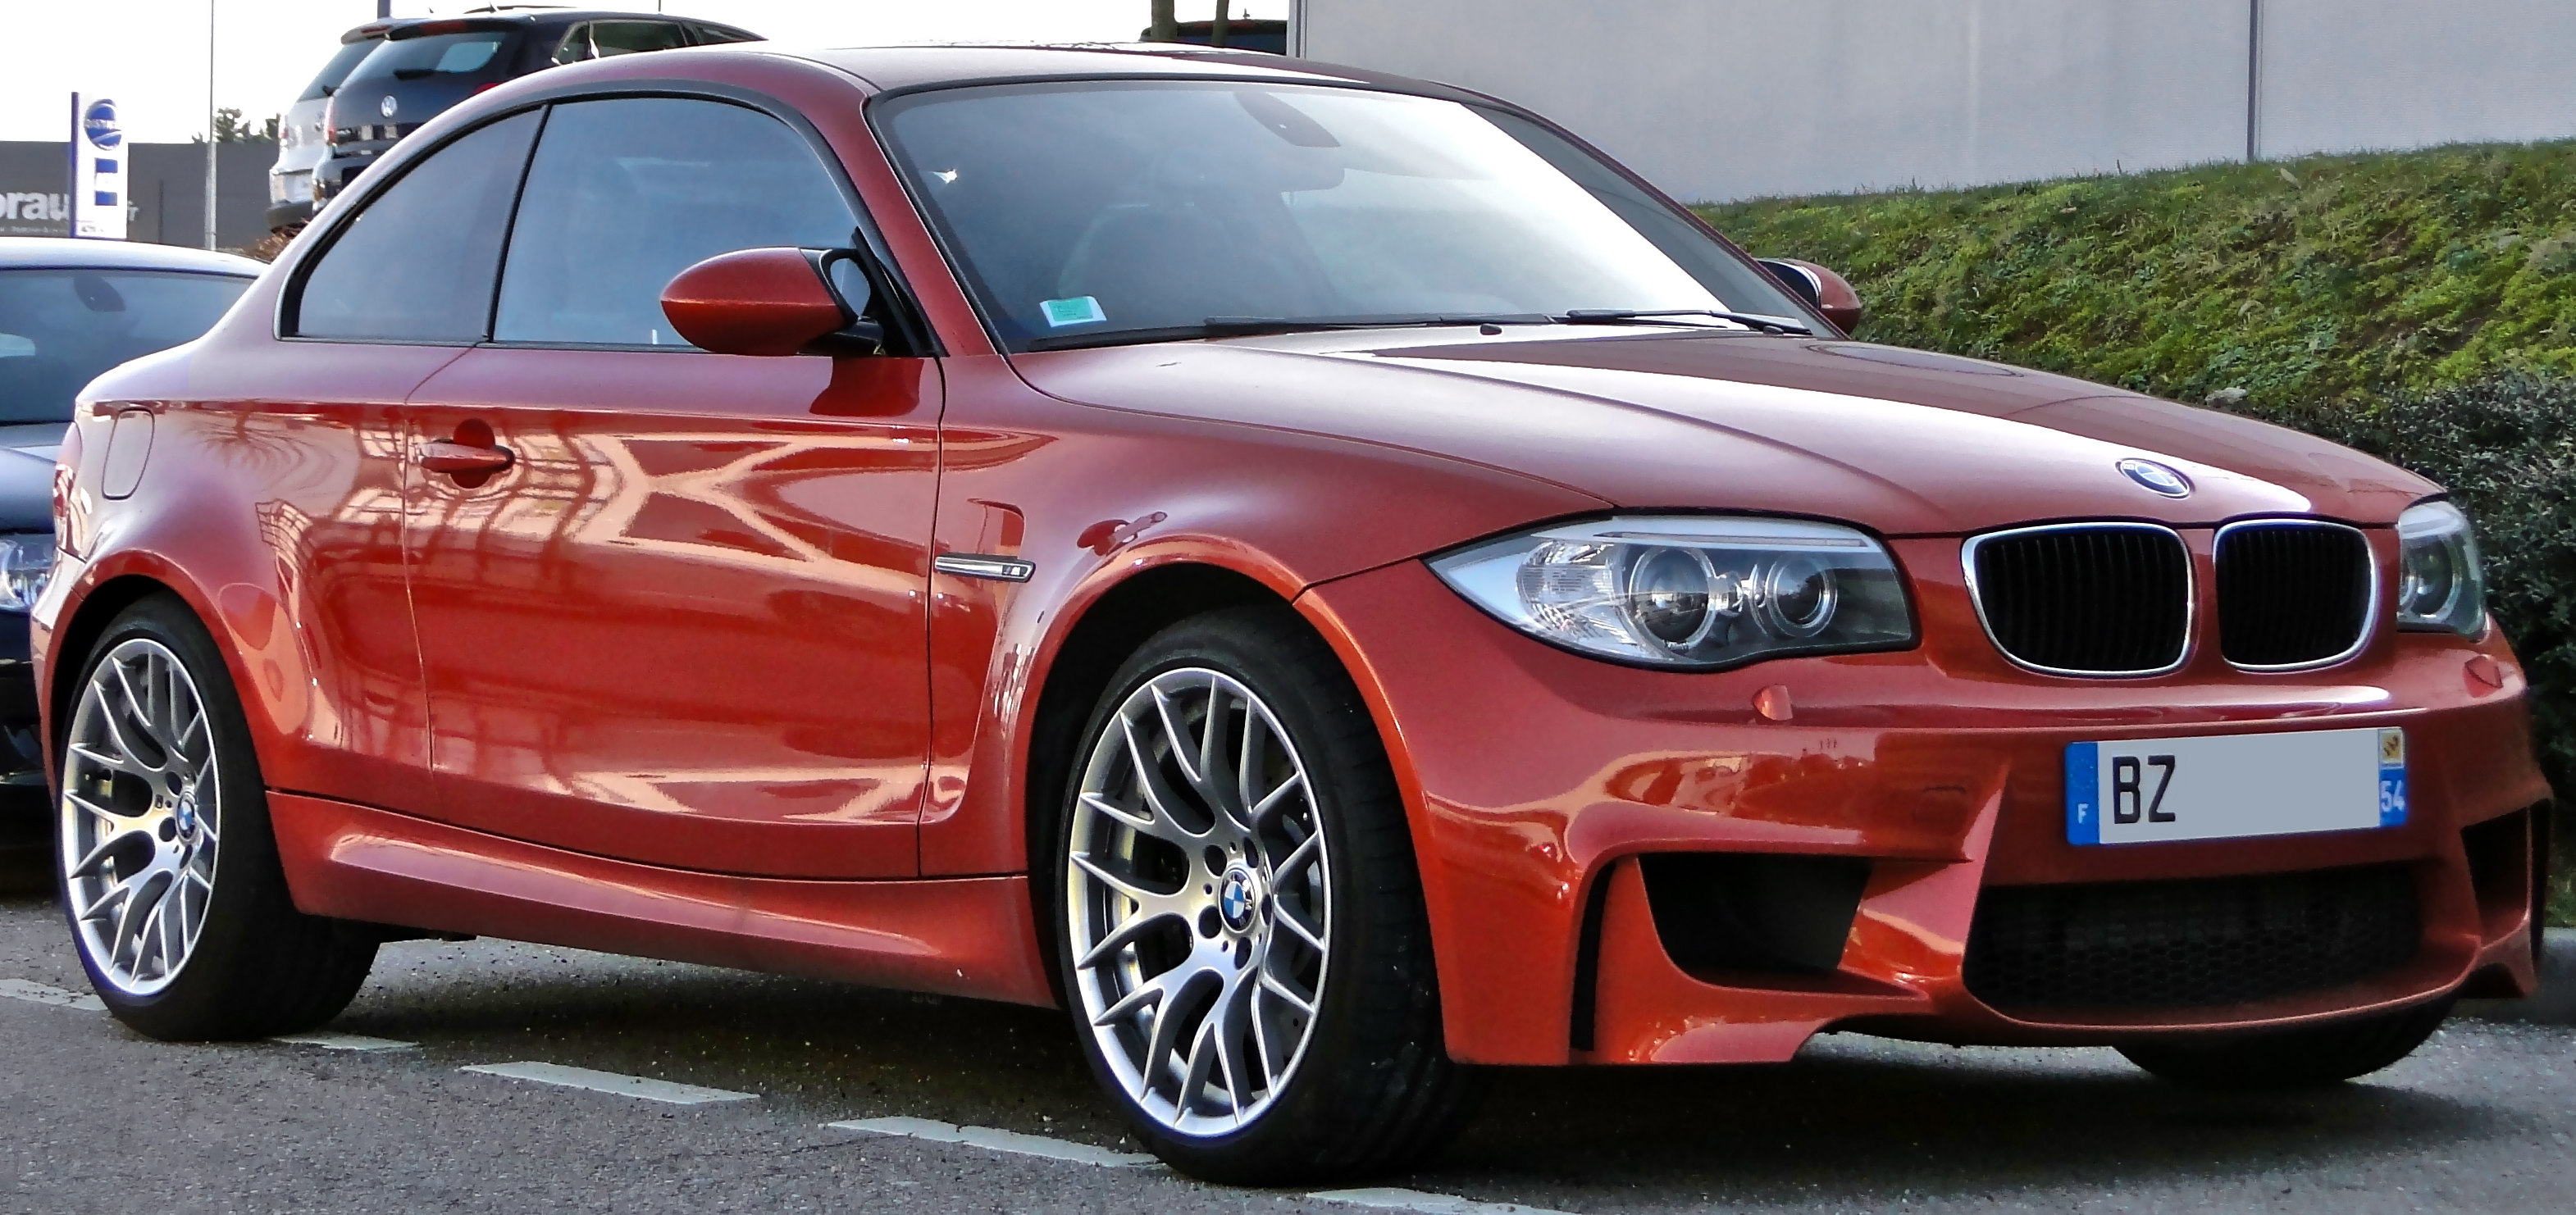 BMW 1 Series (E87) - Wikiwand